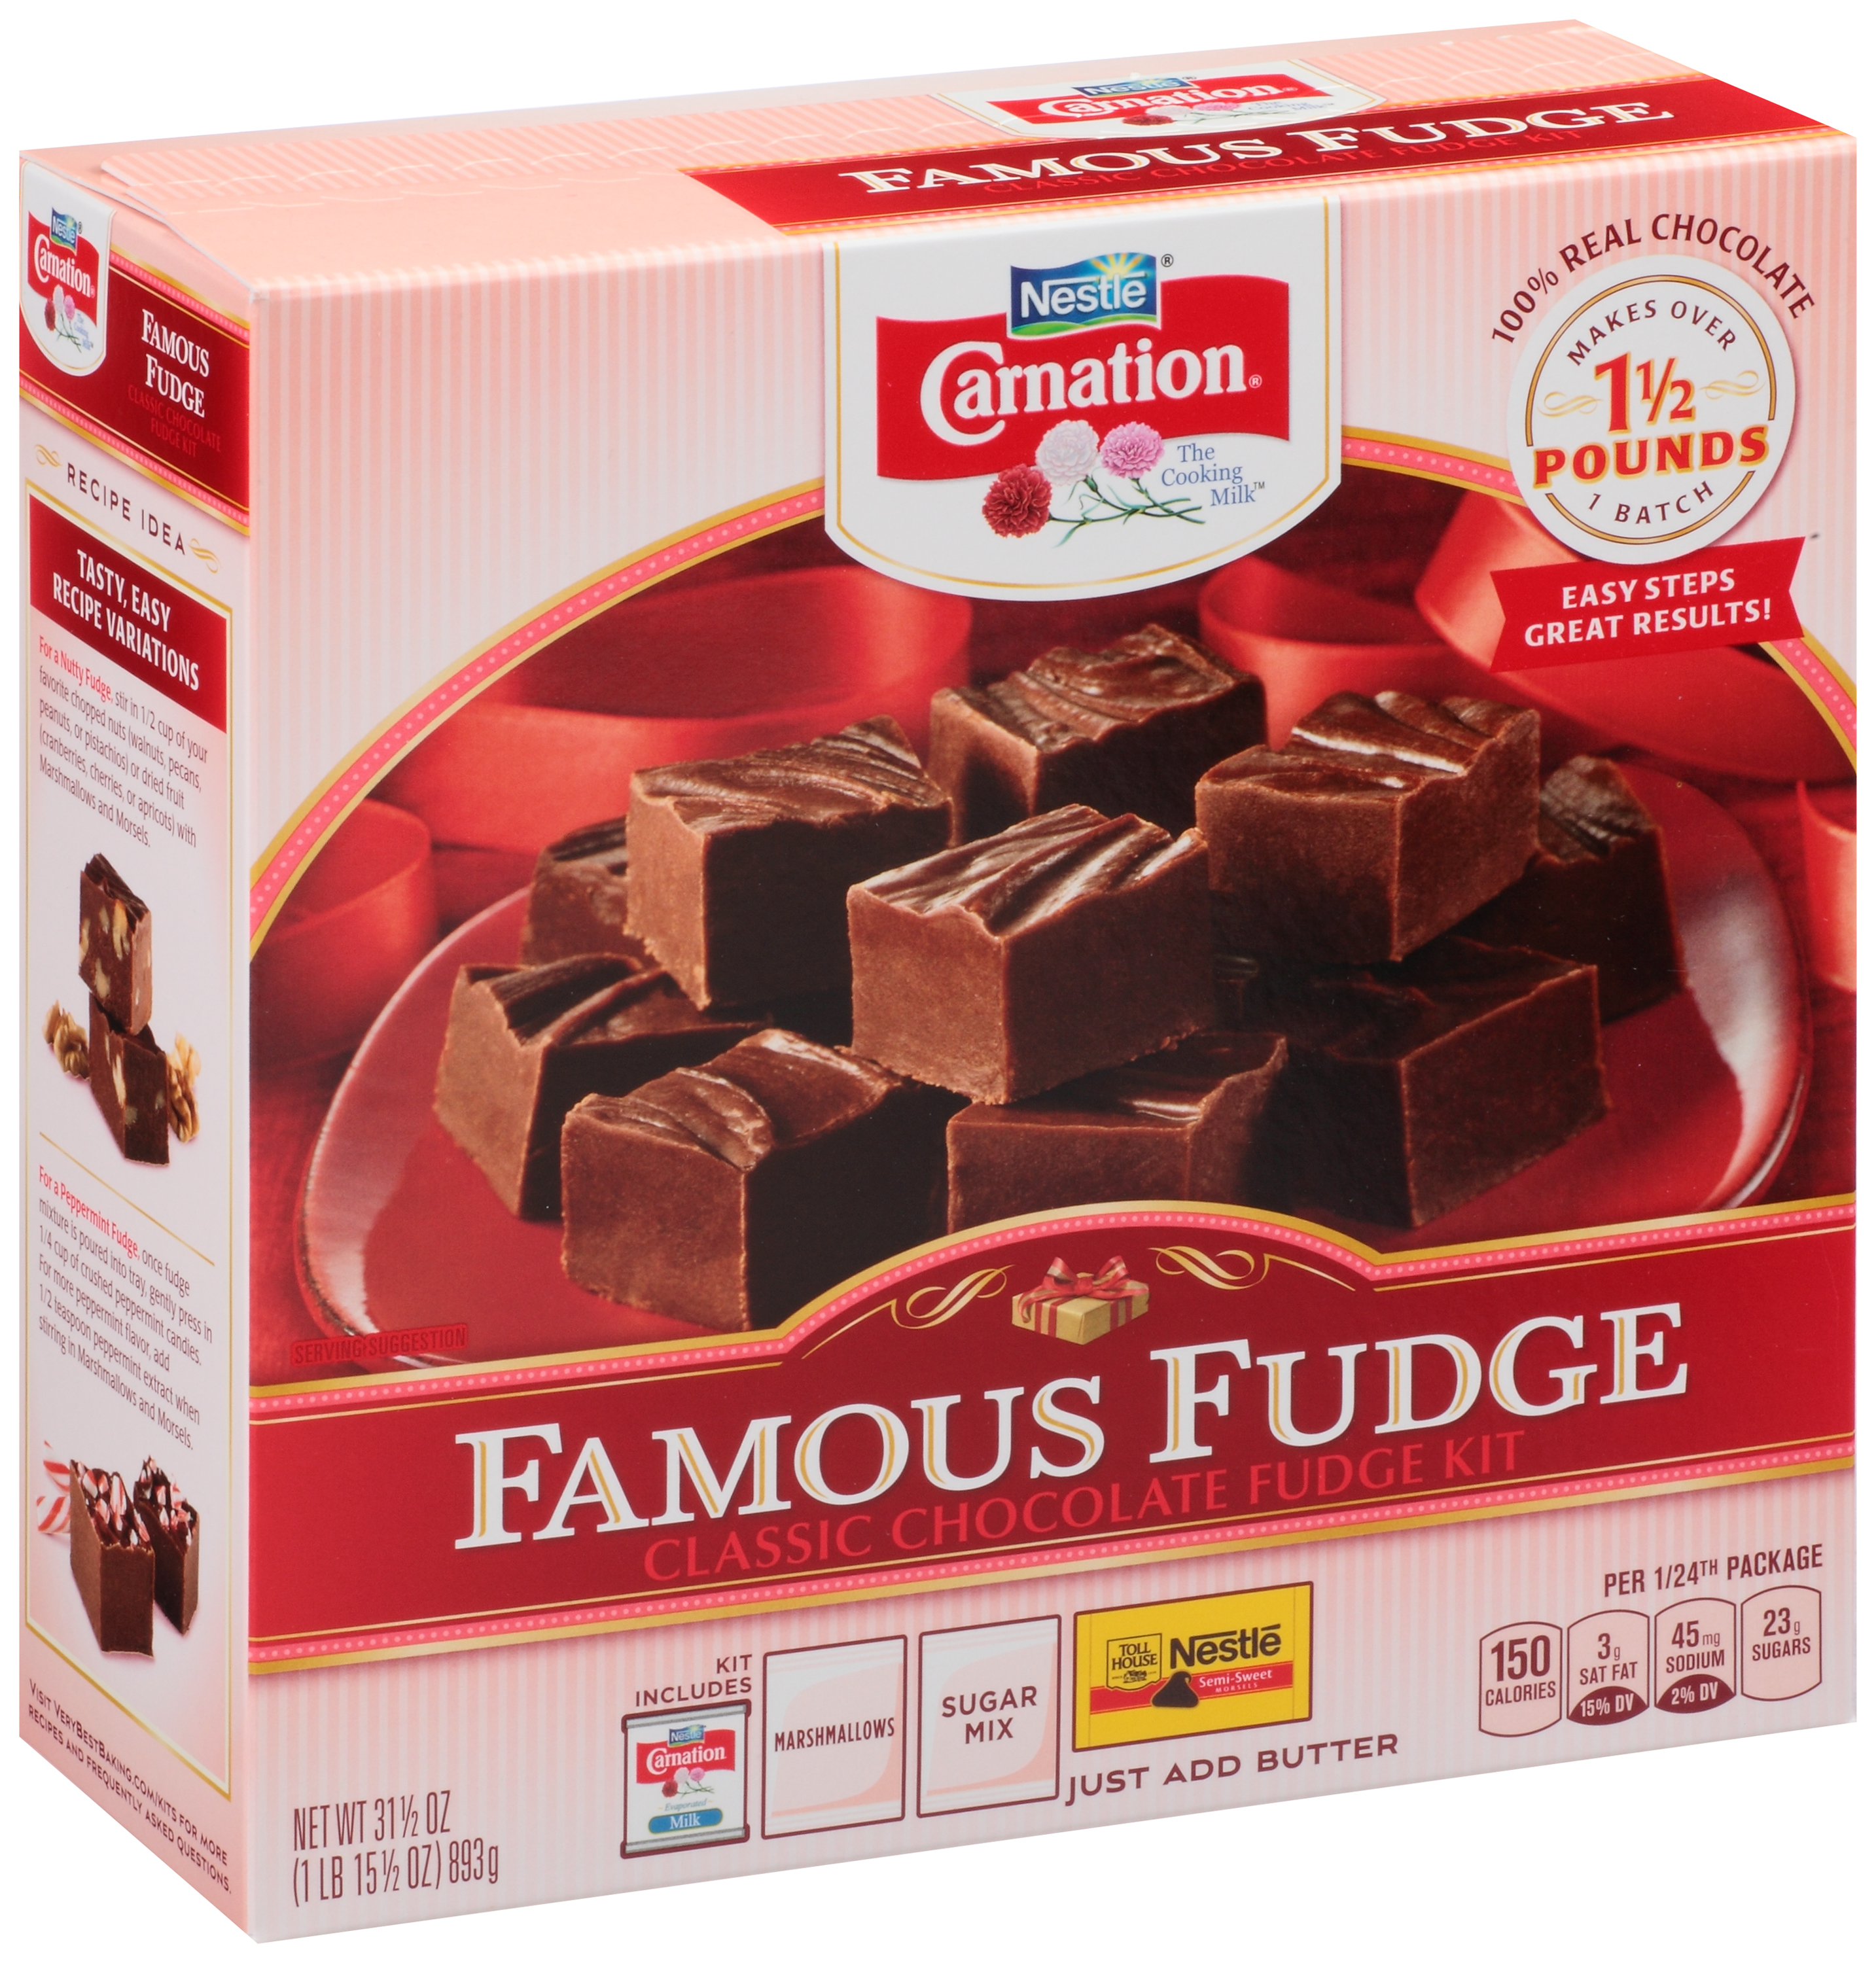 CARNATION Famous Fudge Classic Chocolate Fudge Kit 31.5 oz. Box